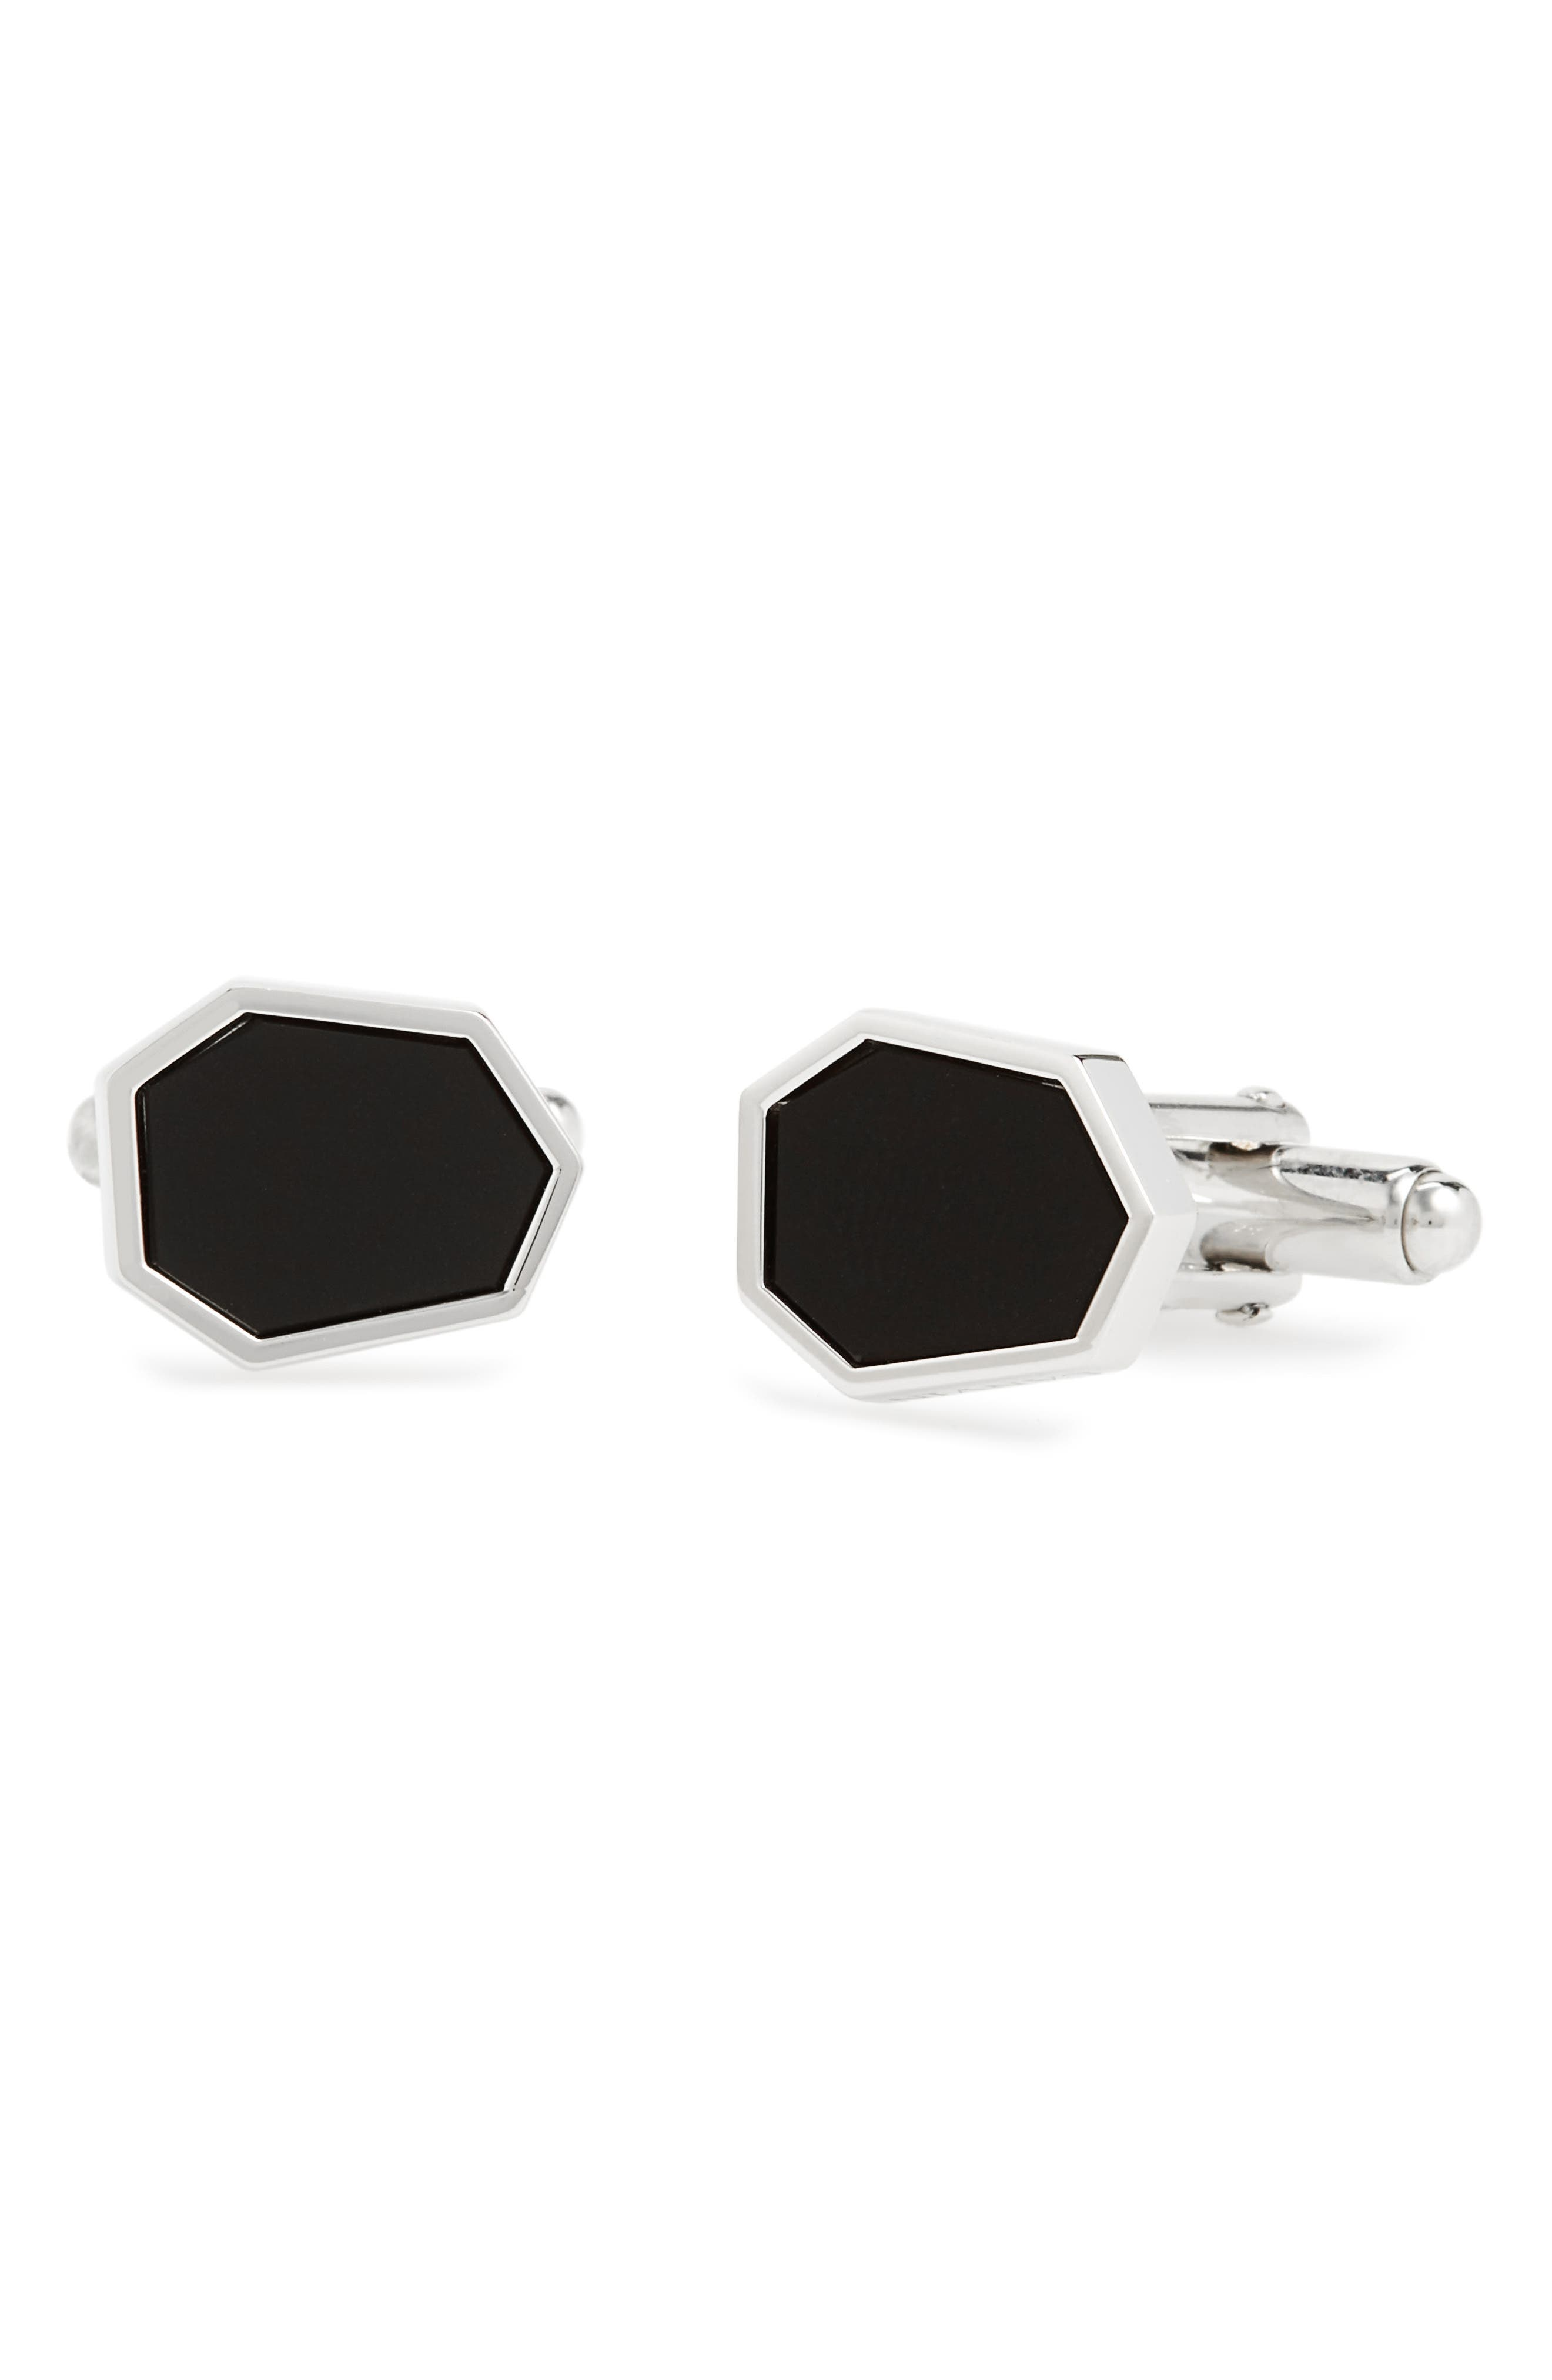 Polygon Onyx Cuff Links,                             Main thumbnail 1, color,                             3 Rhodium